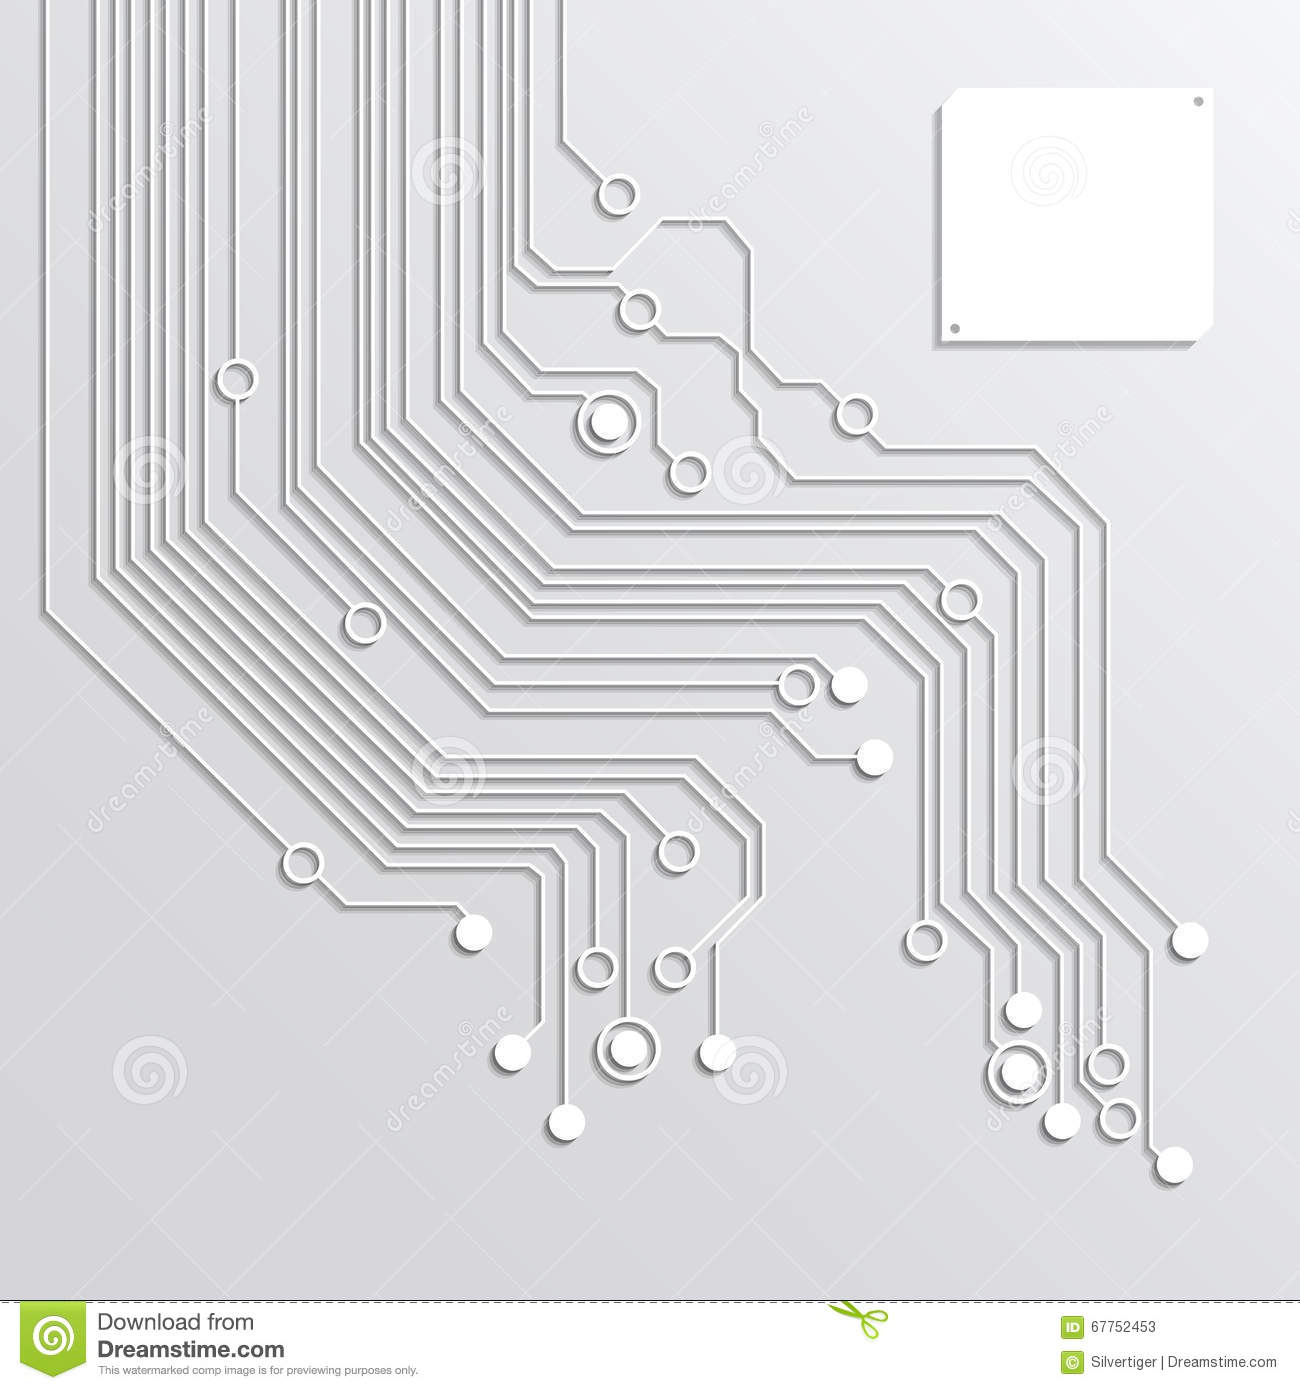 3d circuit board abstract backgrounds